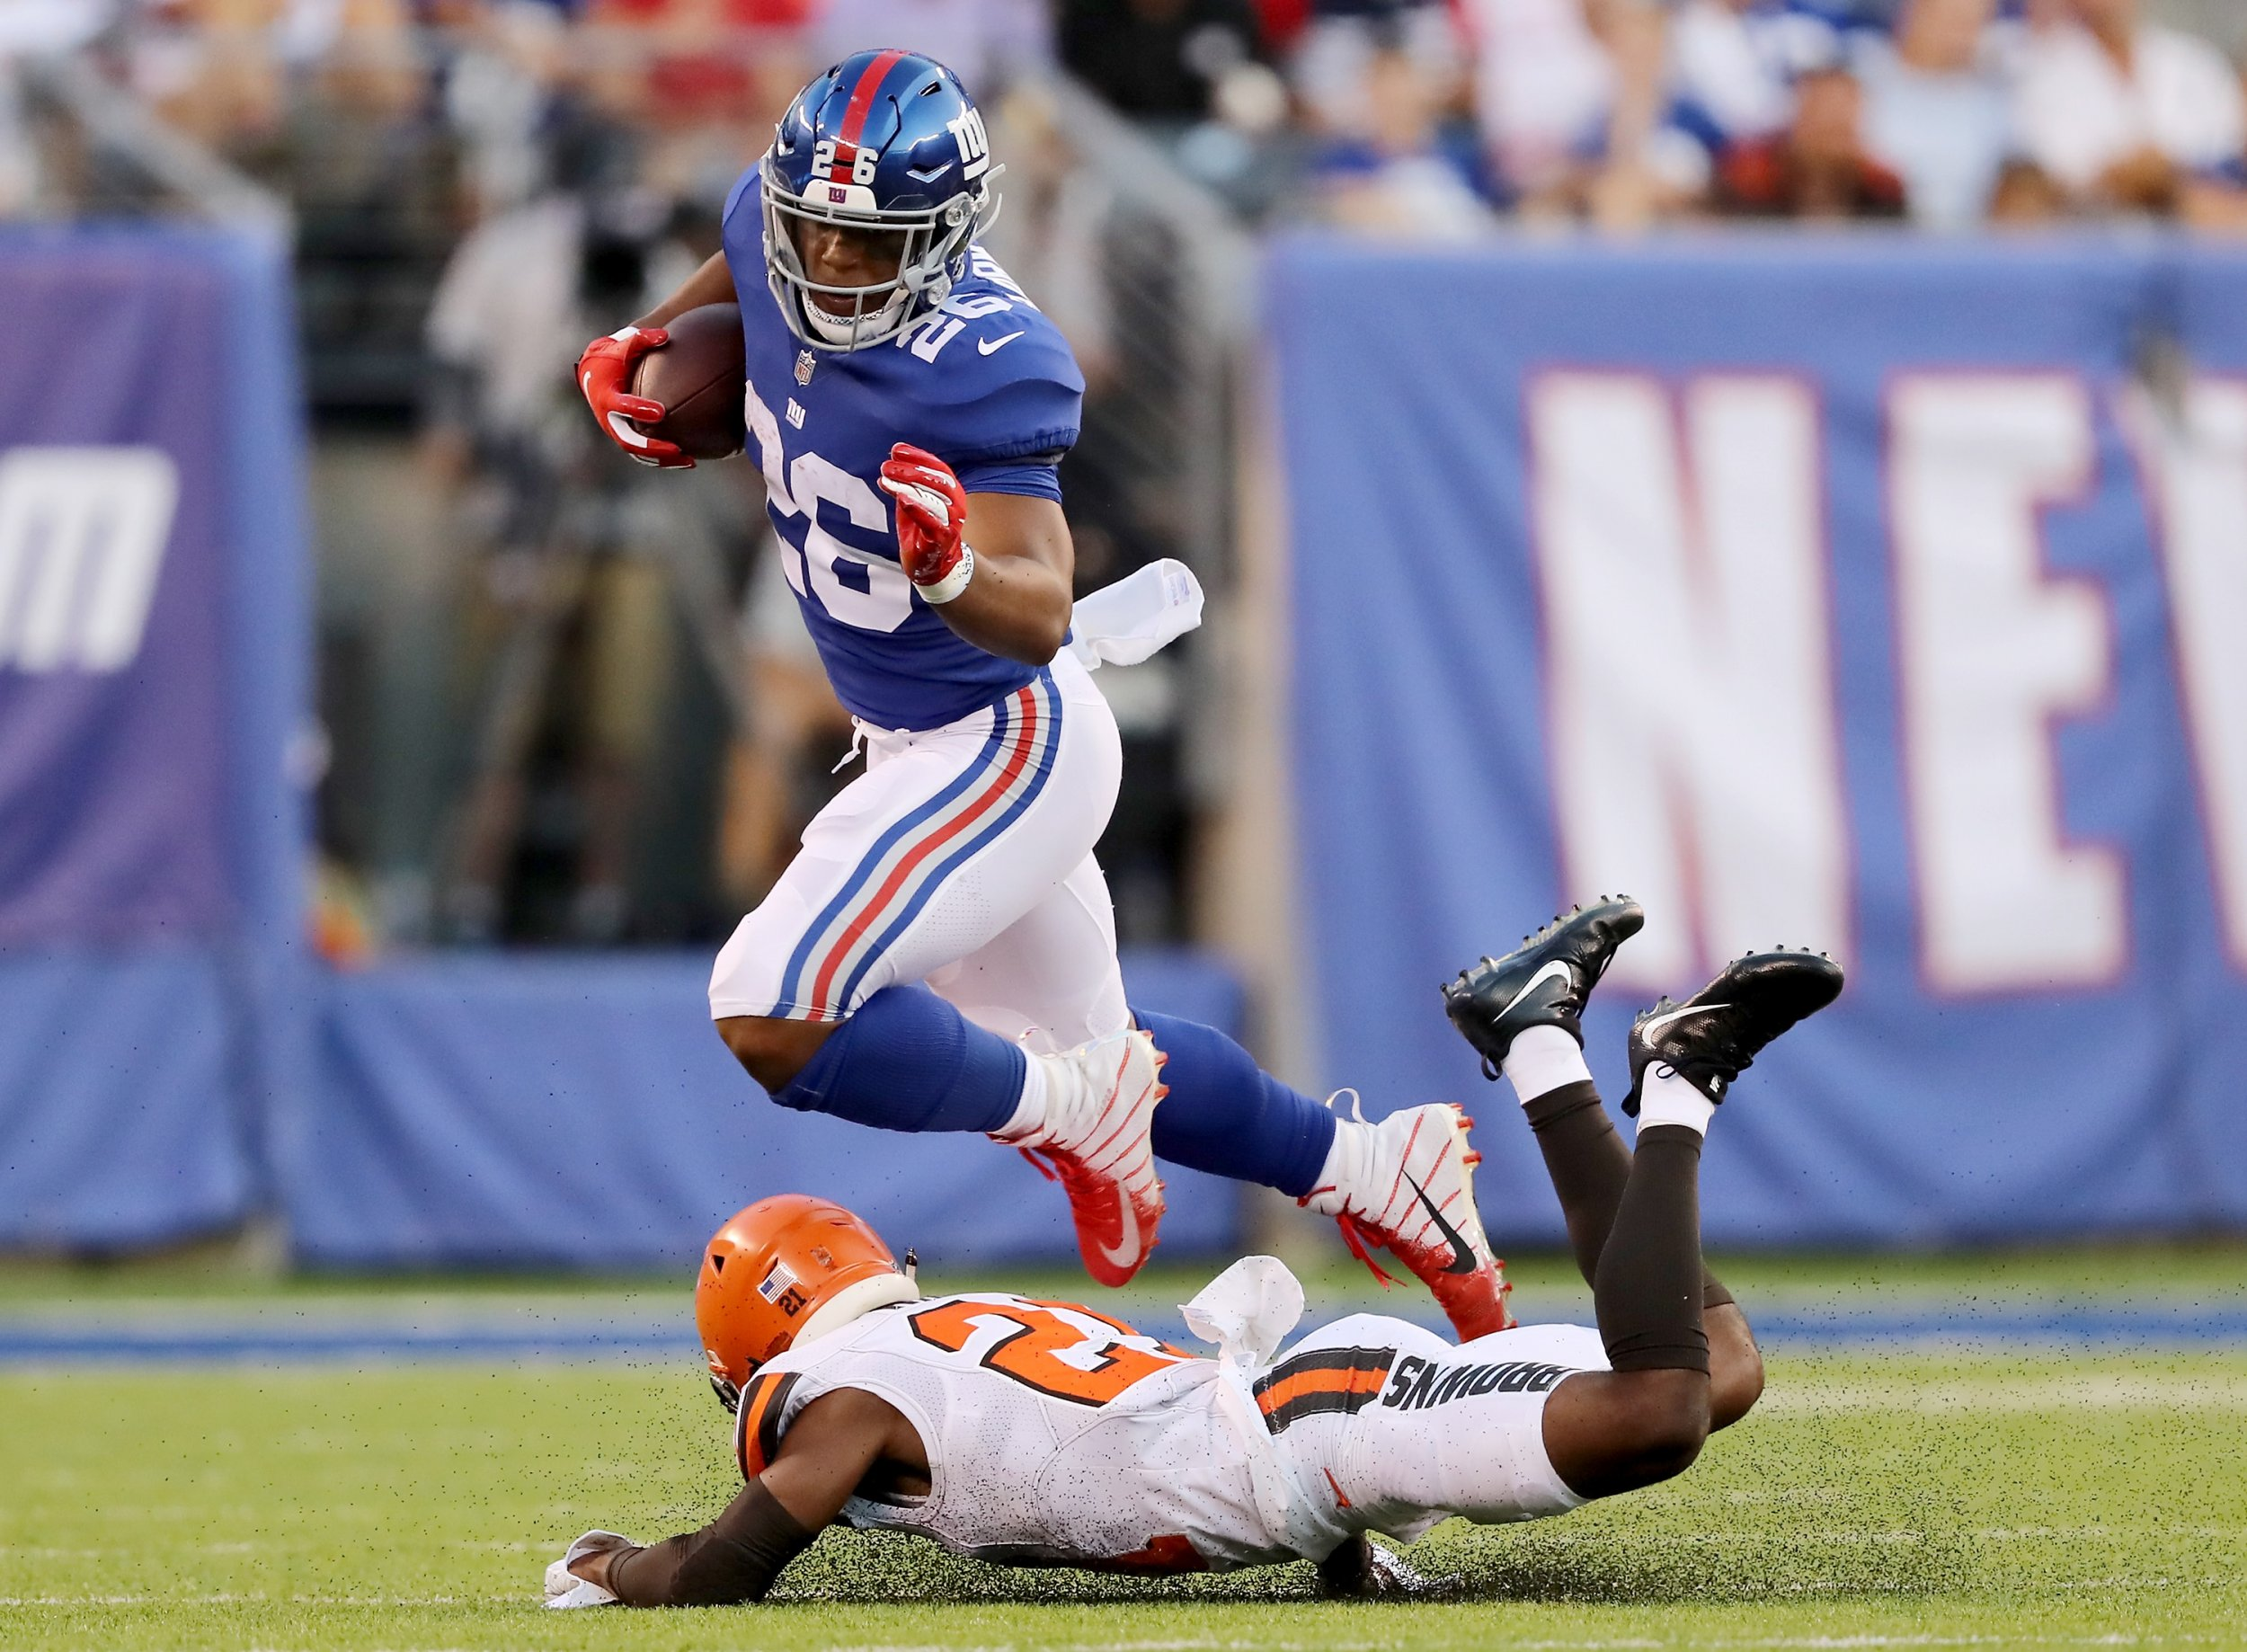 025d21c776a Saquon Barkley  26 of the New York Giants carries the ball as Damarious  Randall  23 of the Cleveland Browns defends in the first quarter during  their ...